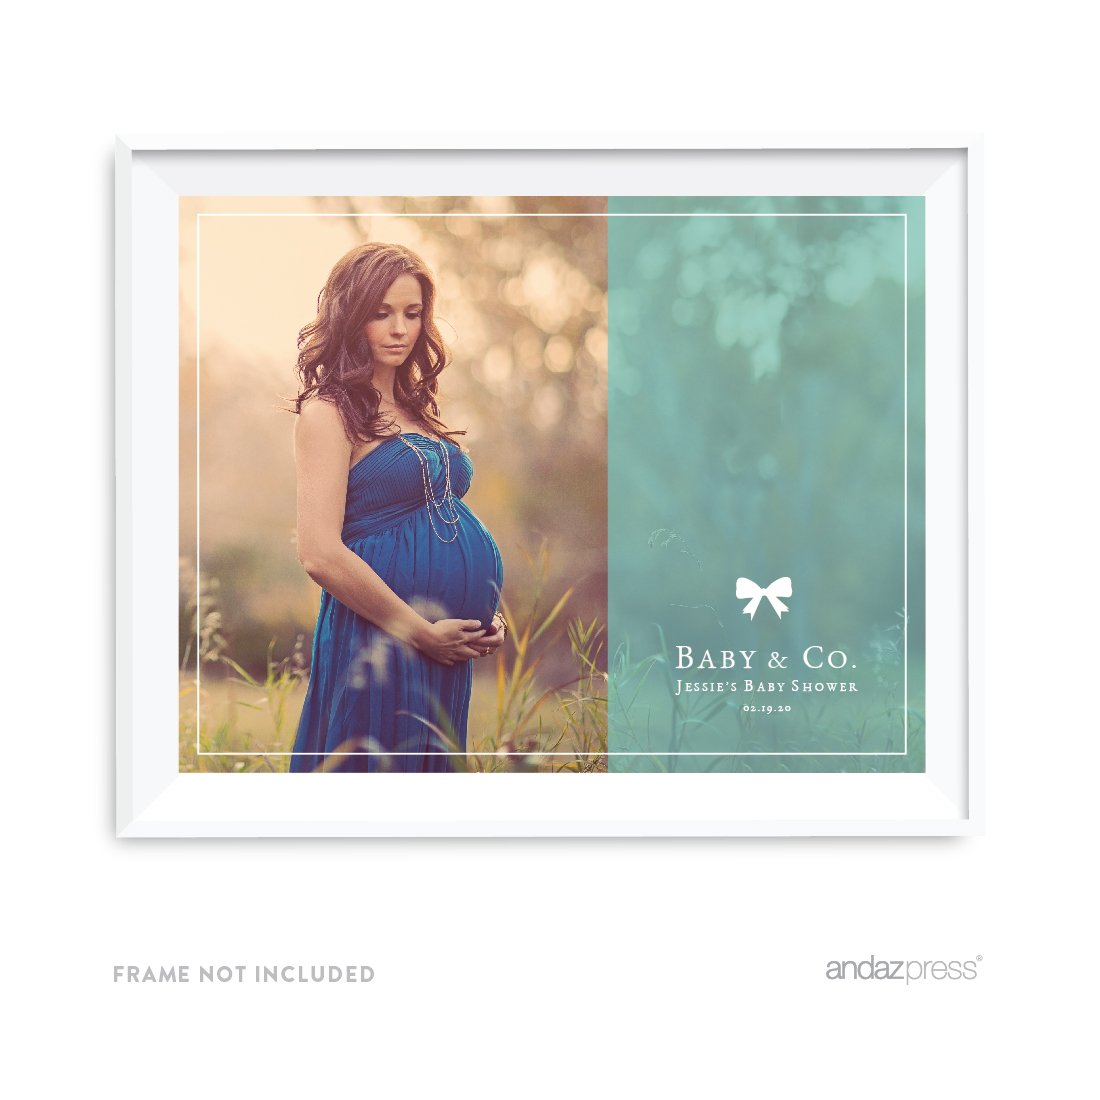 Andaz Press Photo Personalized Baby & Co. Baby Shower Collection, 8.5 x 11-inch Party Sign or Gift Wall Art, 1-Pack, Custom Image